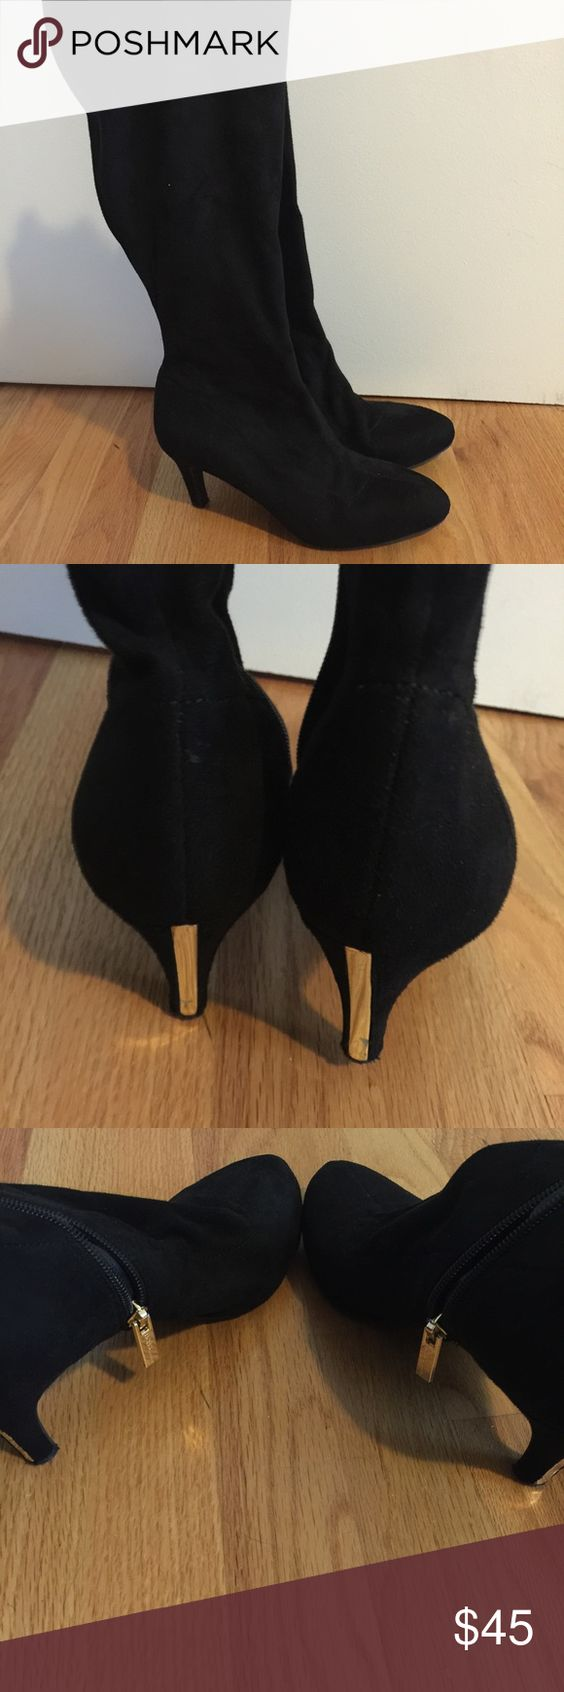 BCBG black suede knee high boots Size 8 black suede boots by BCBG generation. Worn only a few times. Inside zippers with gold accents. A few marks along the heel that aren't really noticeable while wearing. Stunning boots! BCBGeneration Shoes Heeled Boots